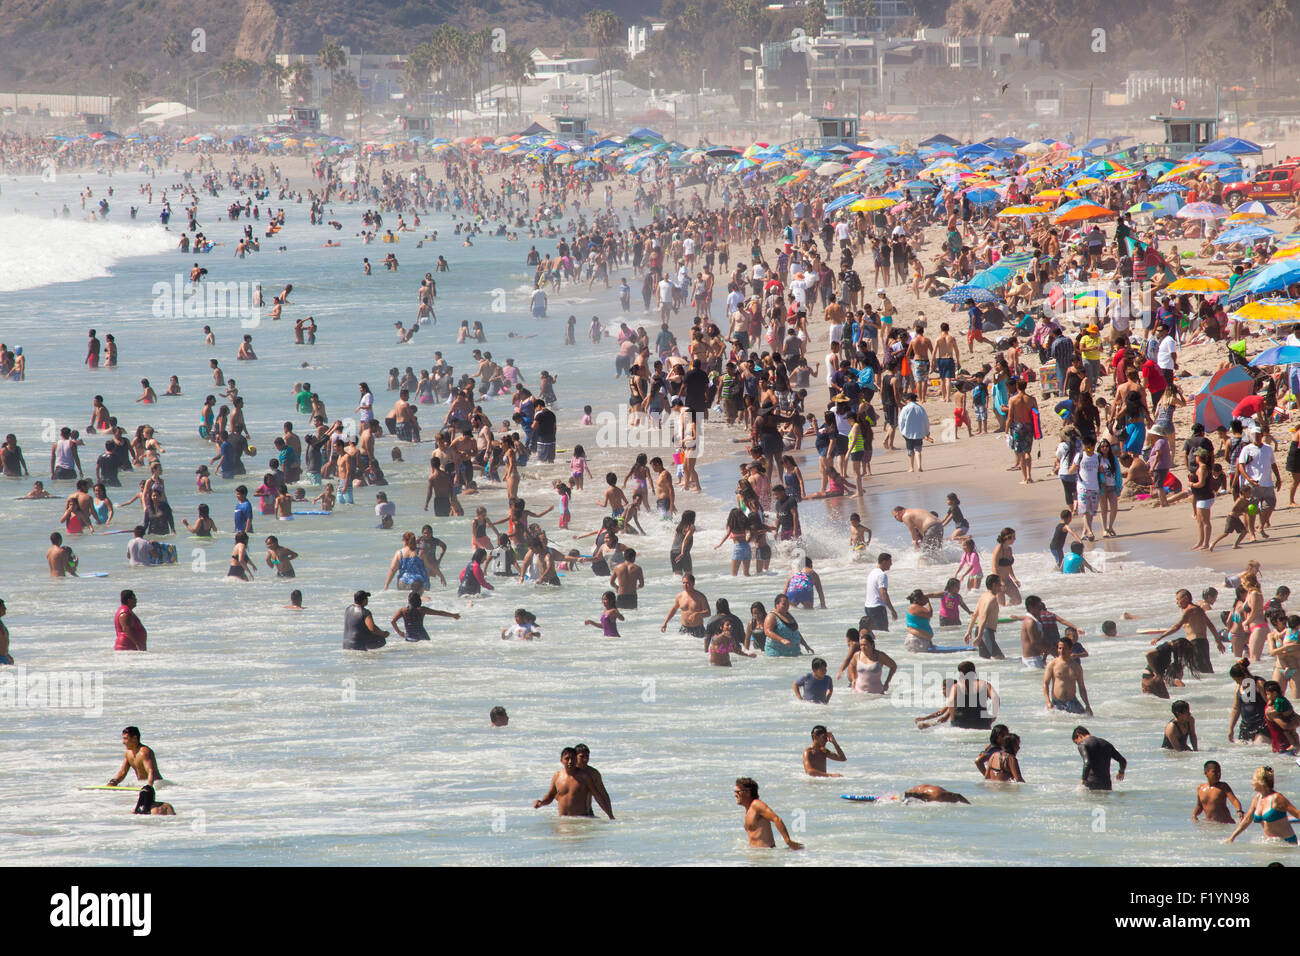 View from the Santa Monica Pier, a crowded, hot Labor Day - Monday September 7, 2015 - Santa Monica, Los Angeles Stock Photo